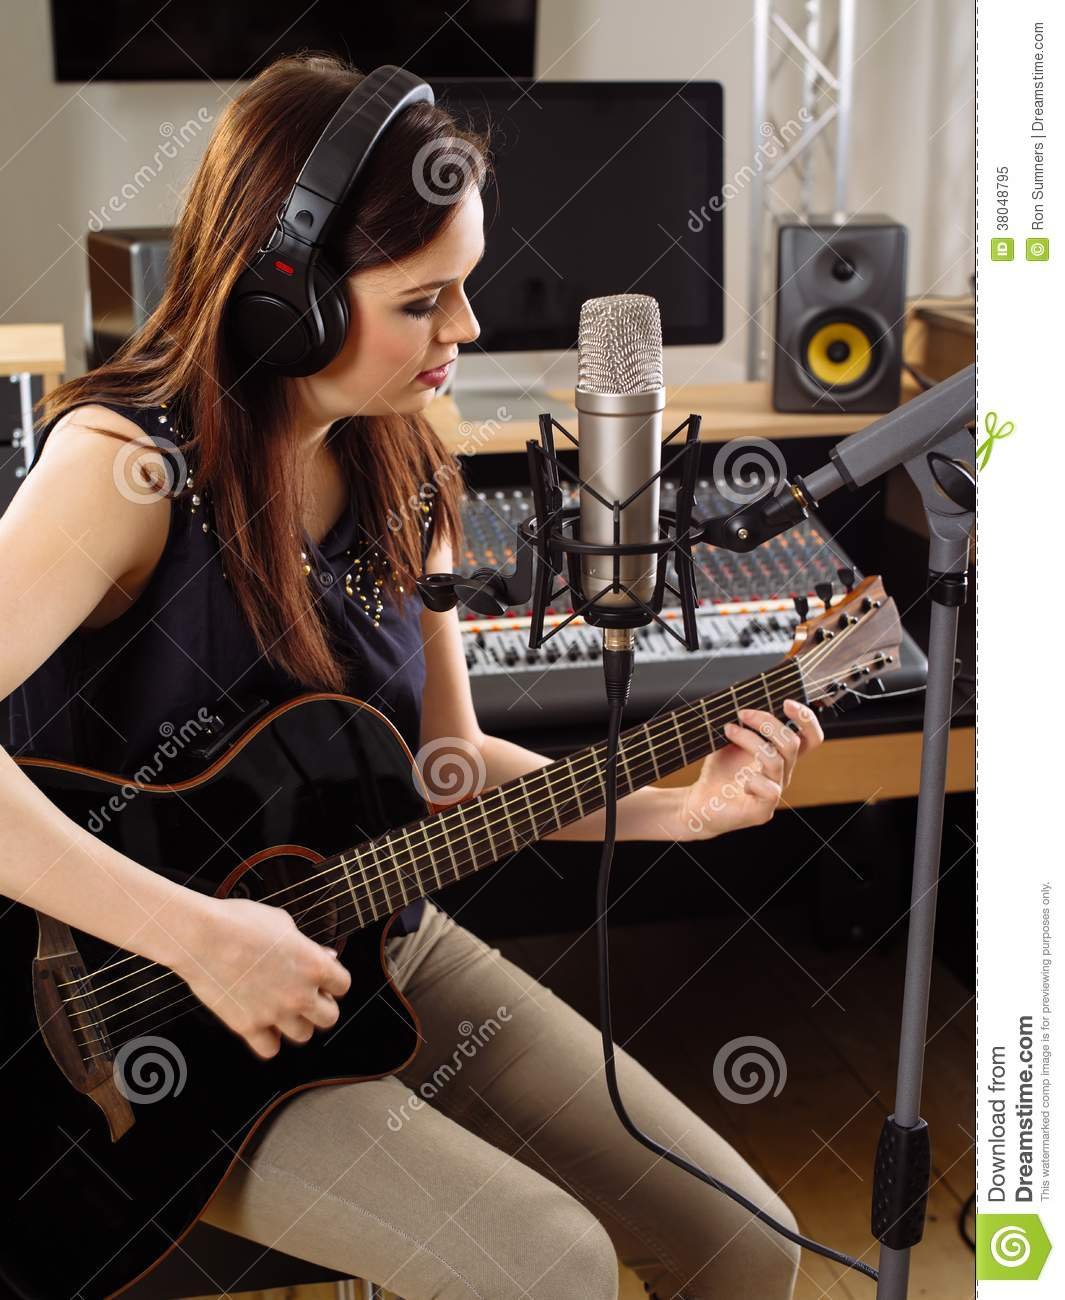 Beautiful Girl With Guitar Wallpaper Woman With Guitar In A Recording Studio Stock Image